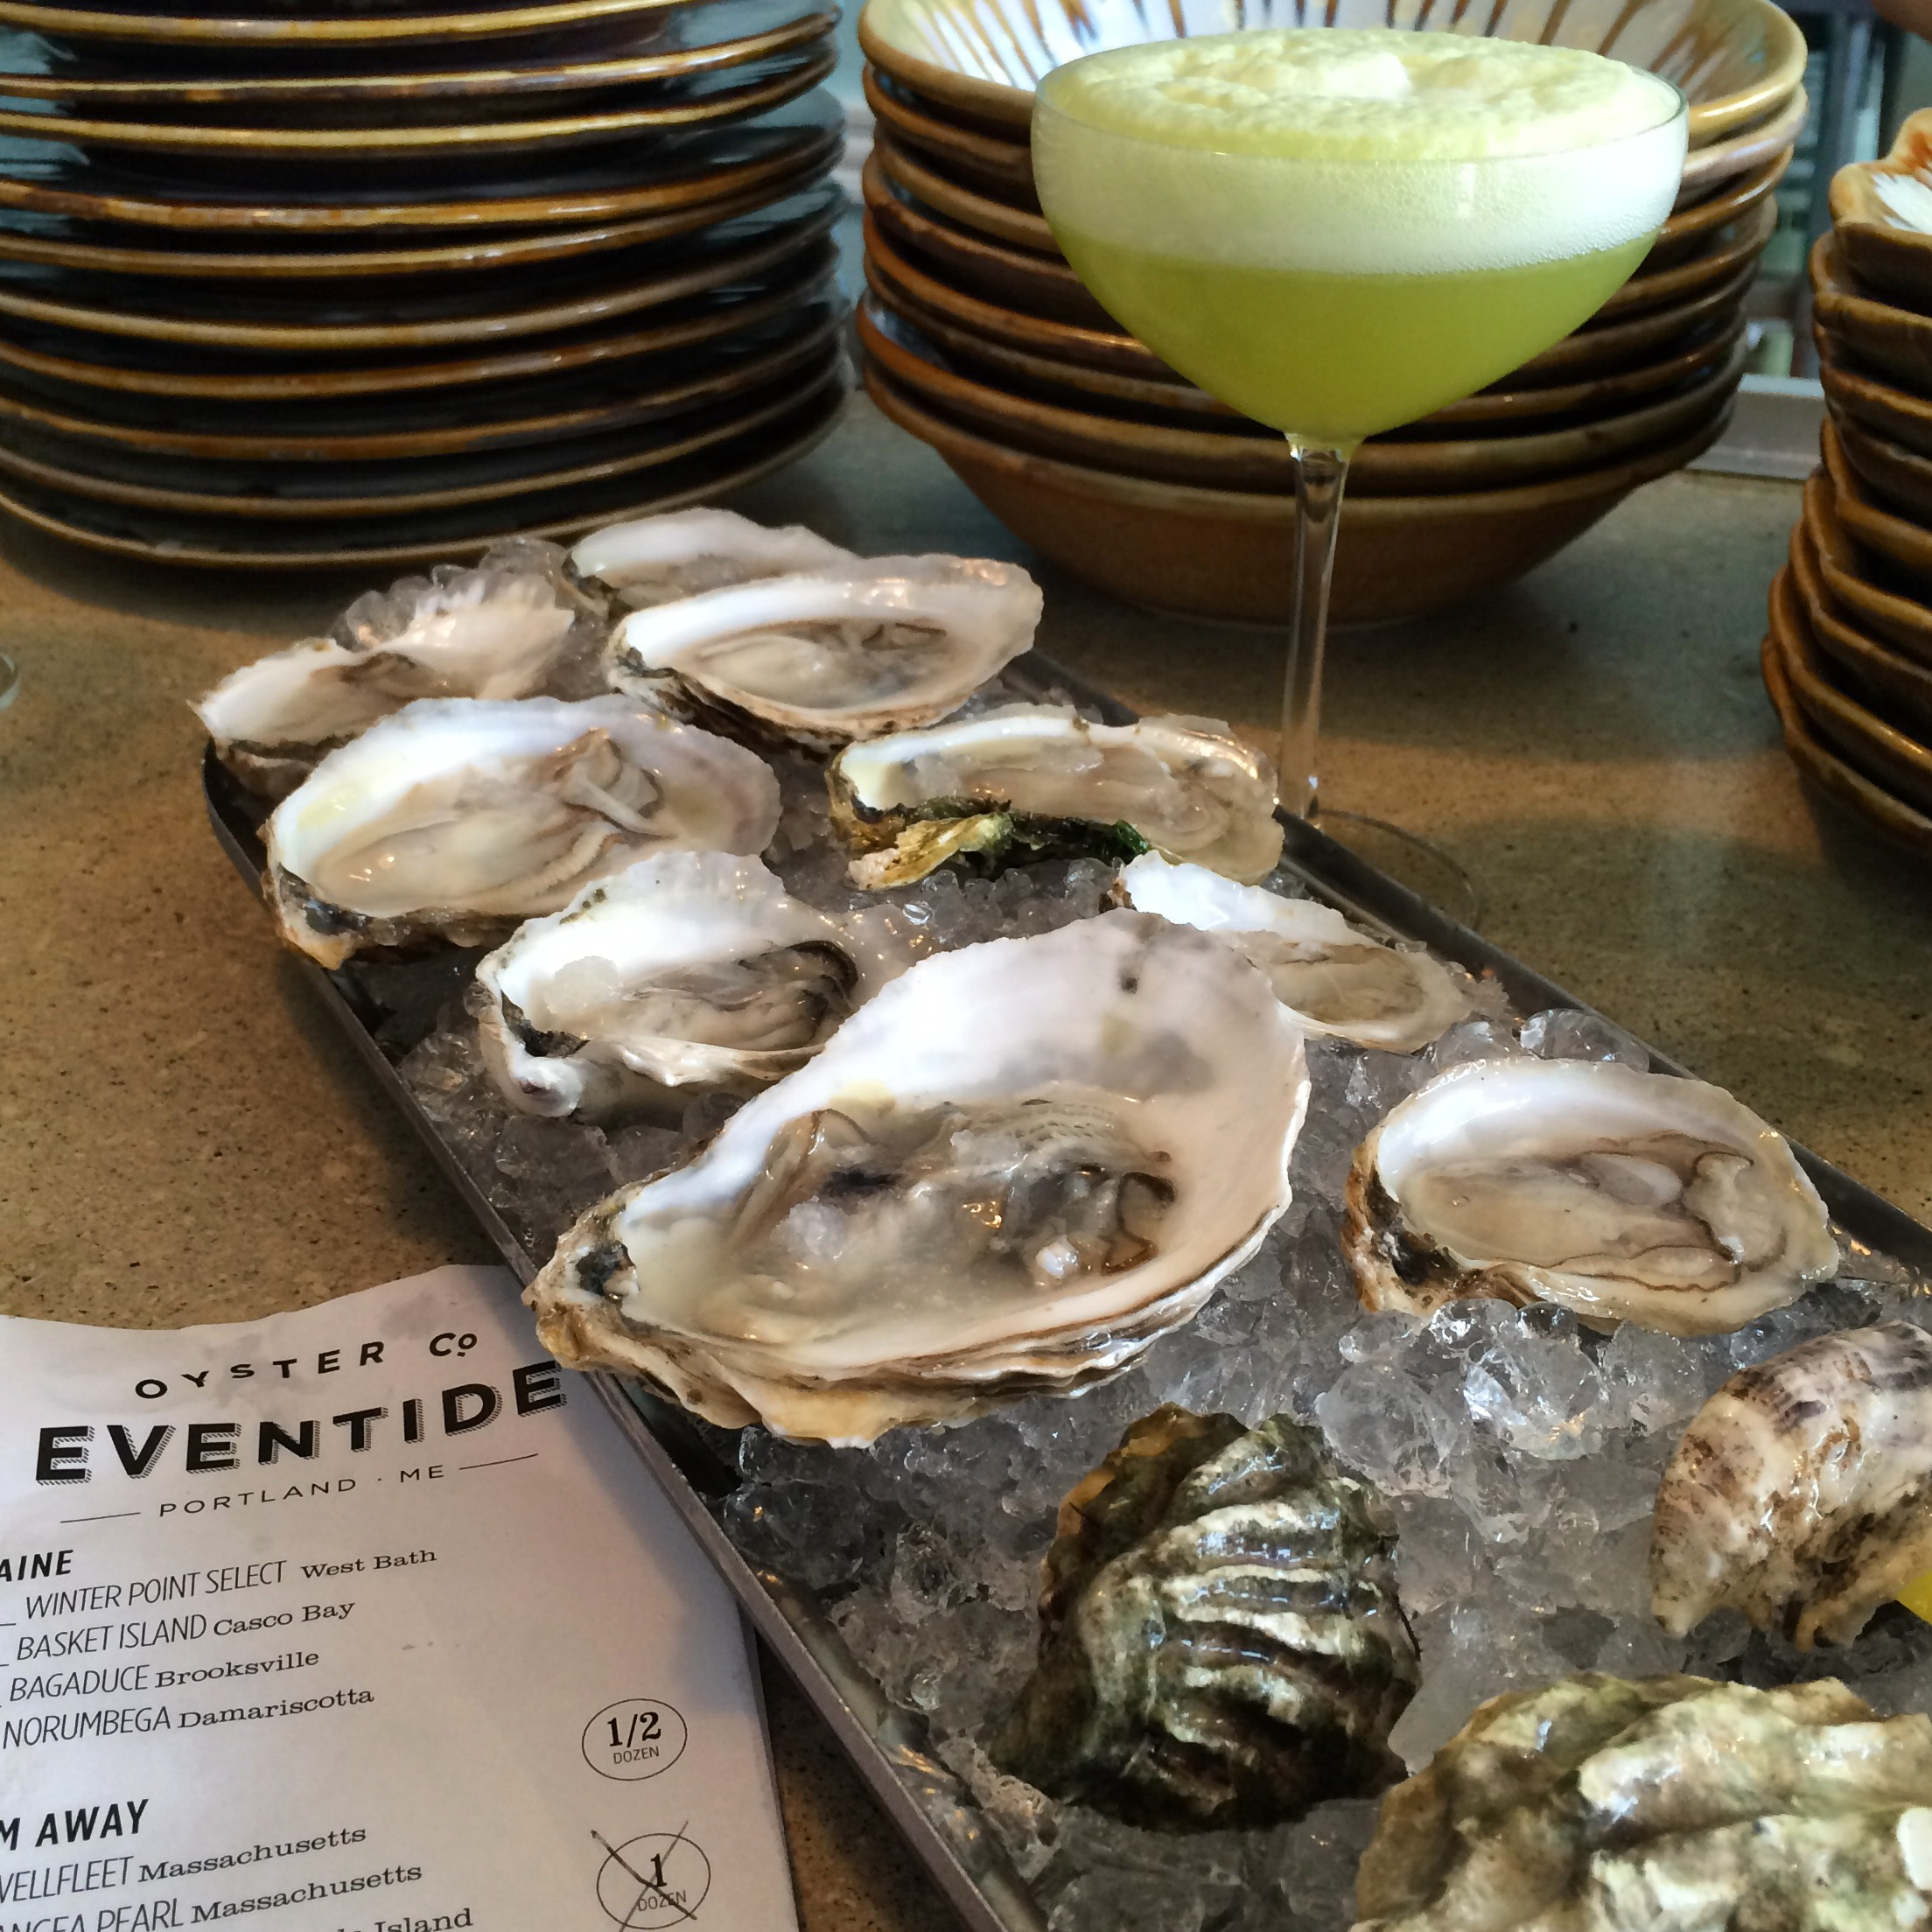 Oysters and a celery mimosa @ Eventide Oyster Co., 86 Middle St., Portland, ME